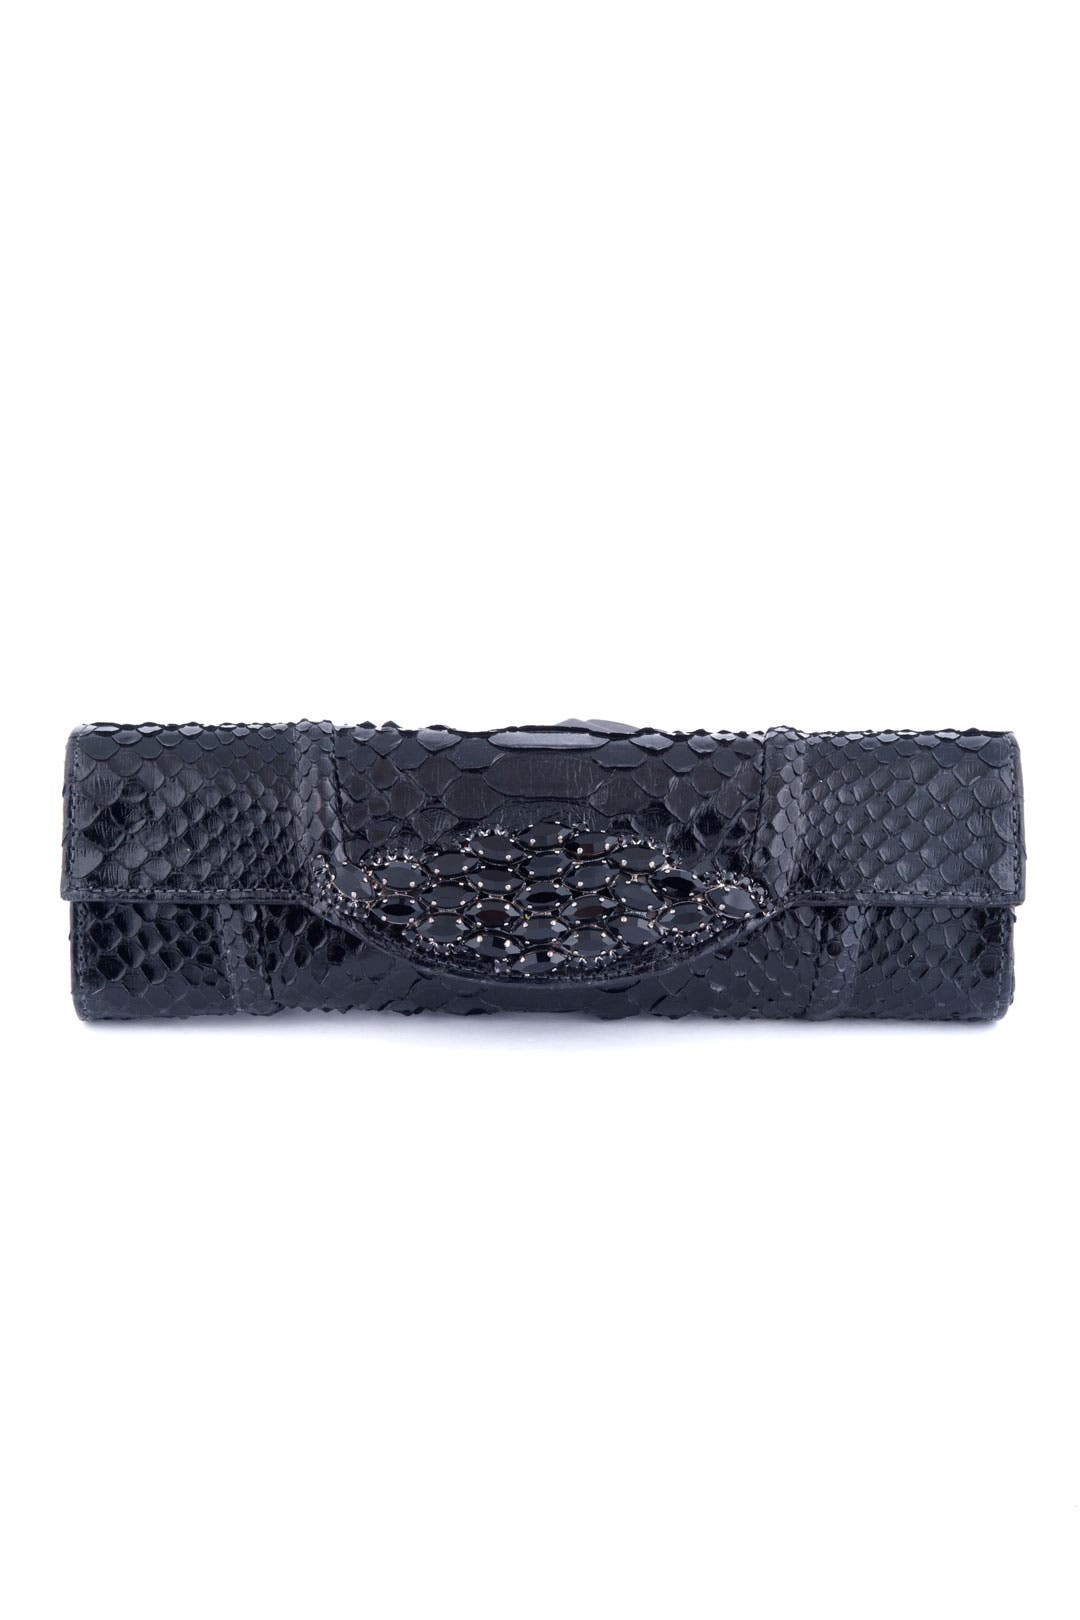 Black Coffee Clutch by Carlos Falchi